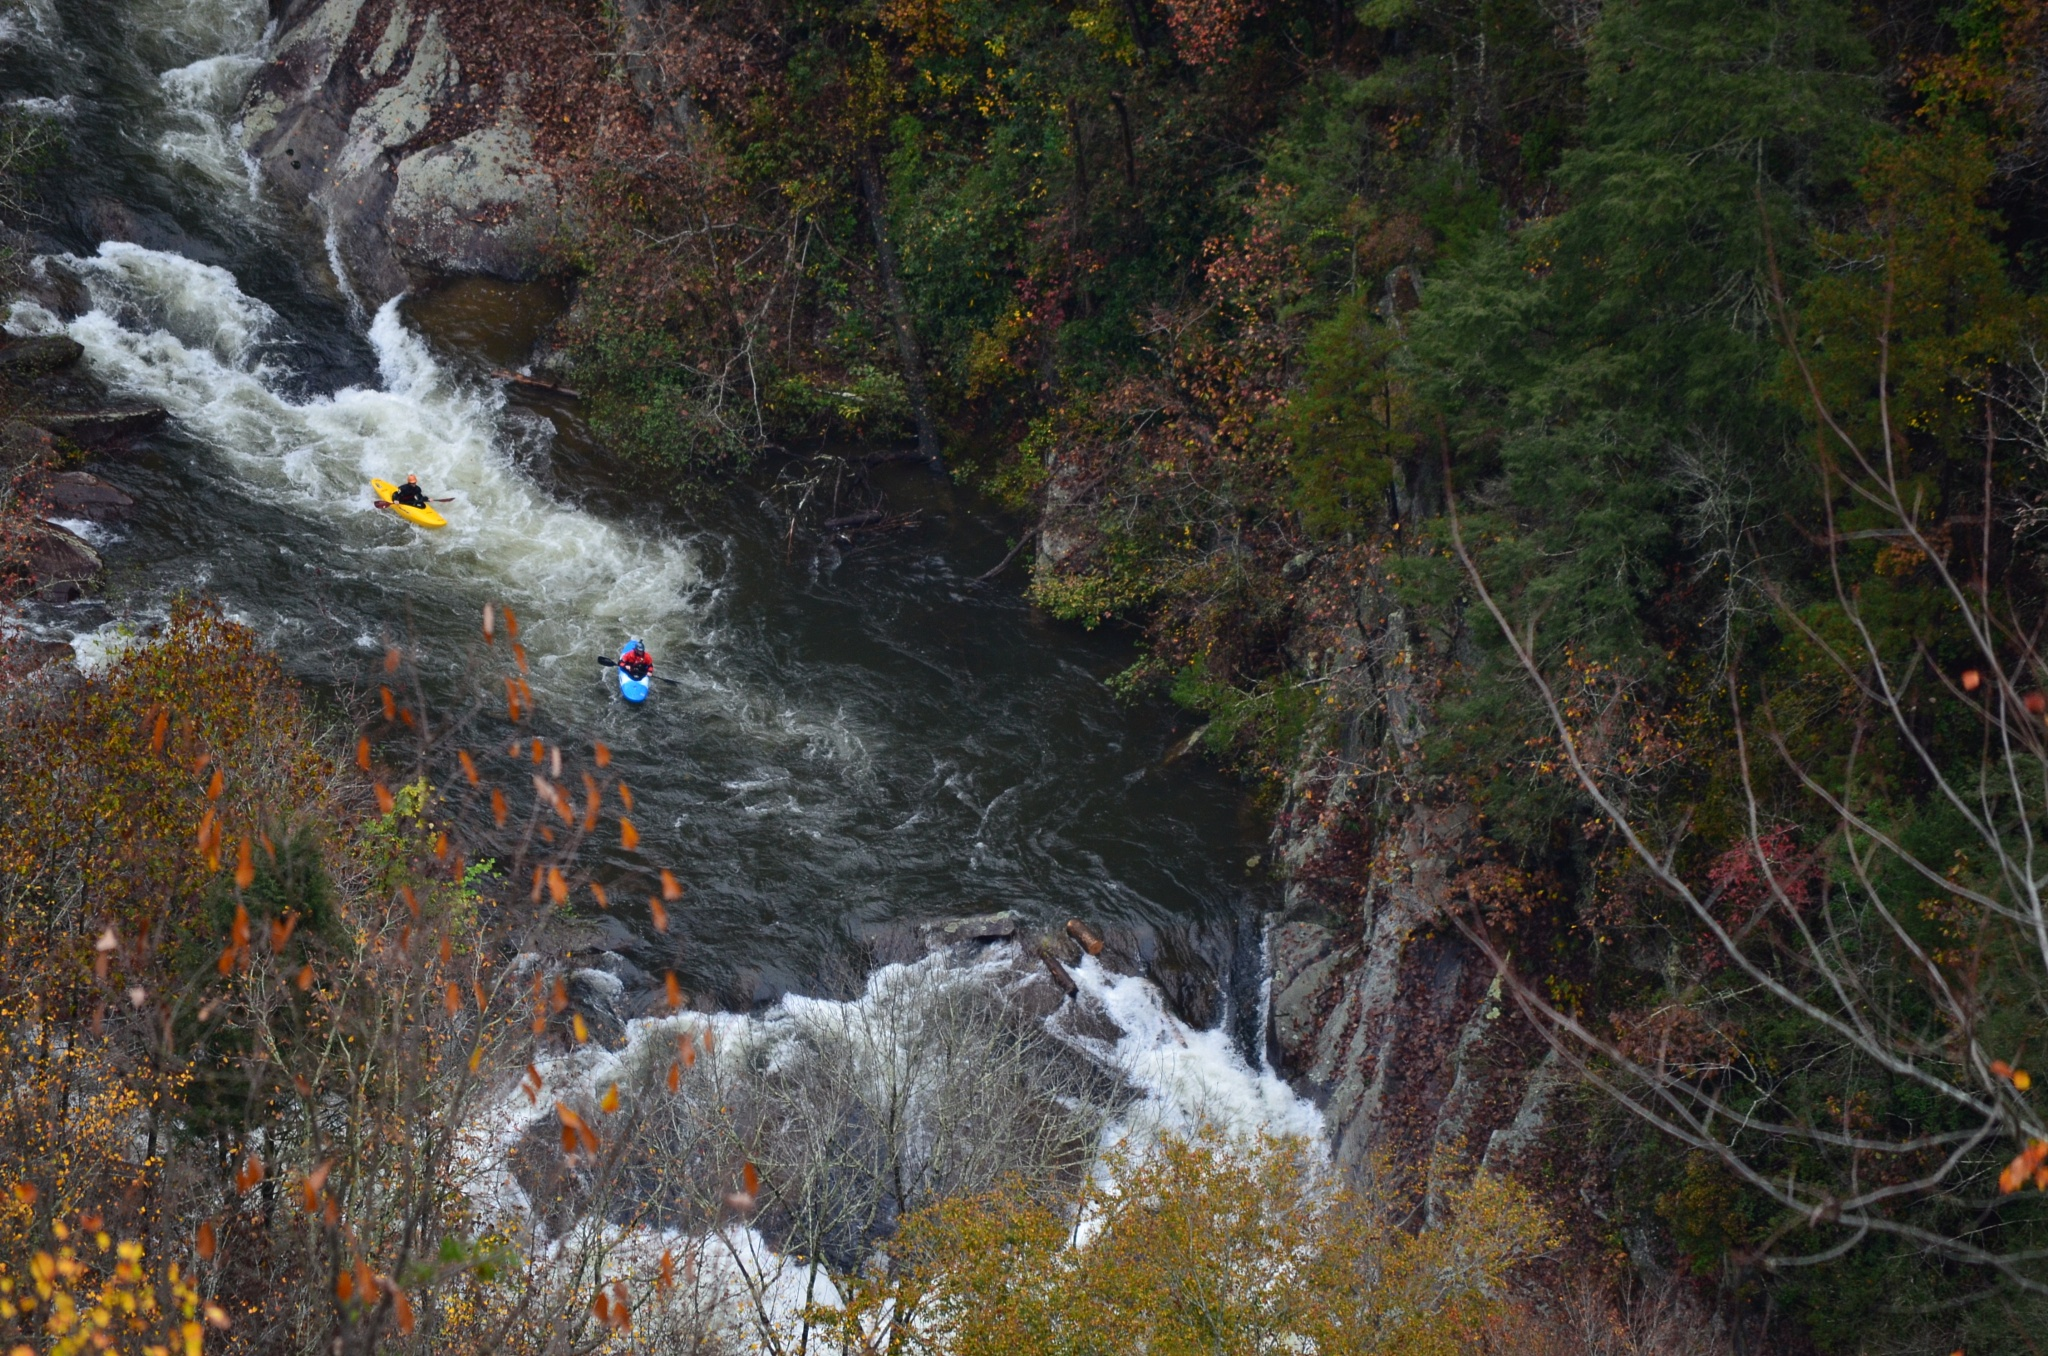 Kayakers by Marcy Cox